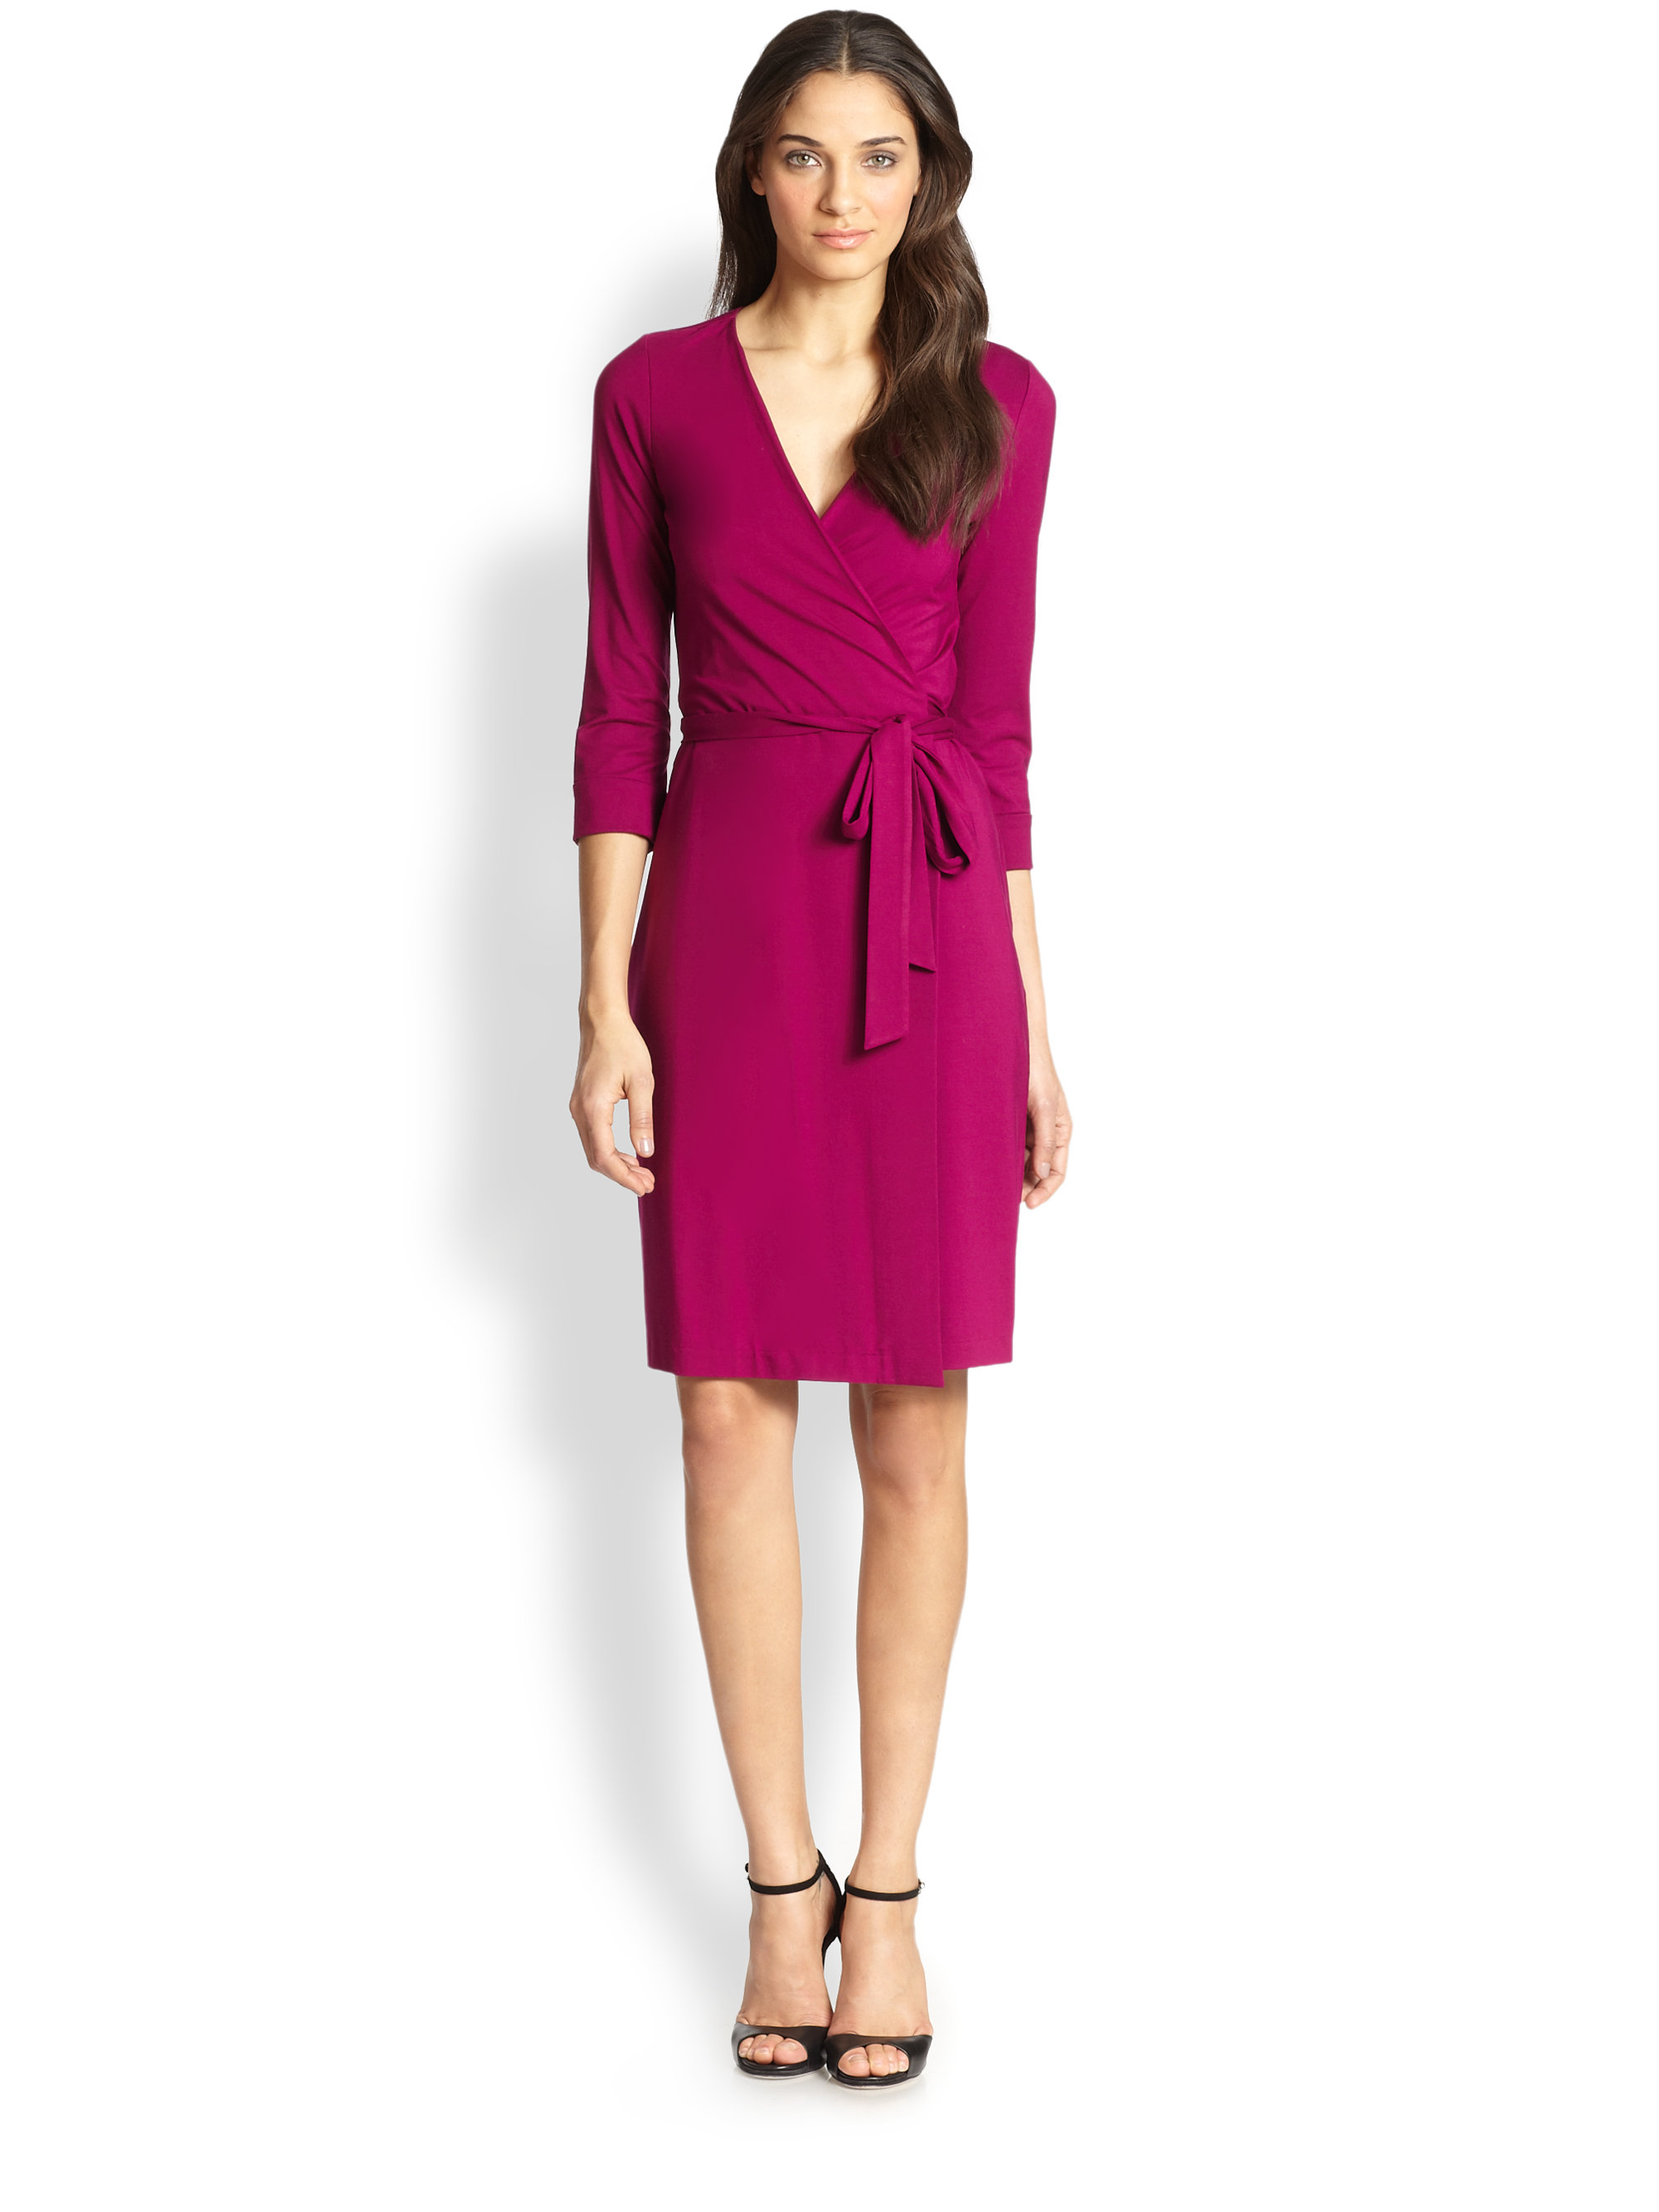 diane von furstenberg new julian wrap dress in pink lotus berry lyst. Black Bedroom Furniture Sets. Home Design Ideas